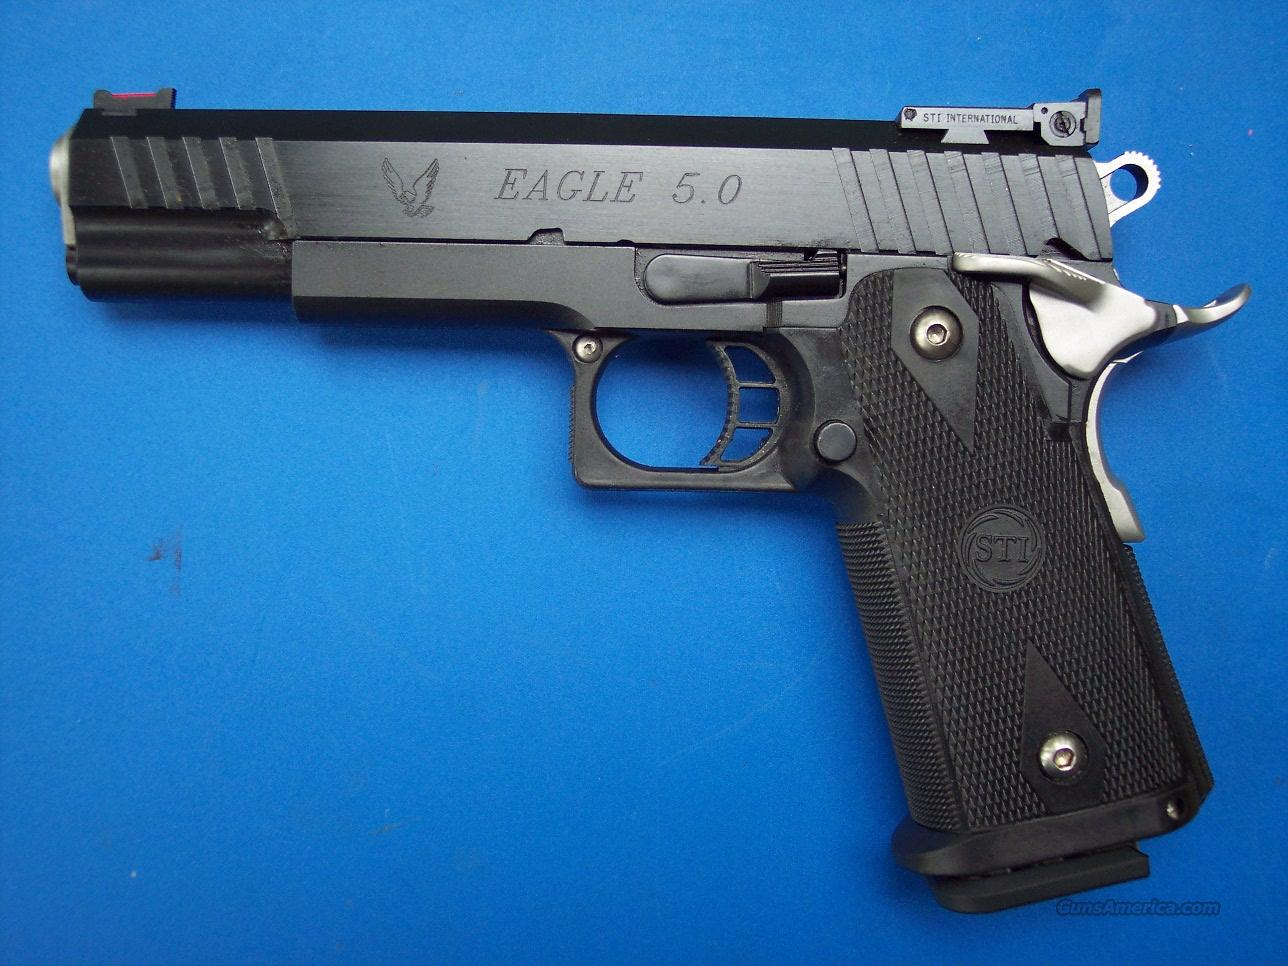 STI Eagle 9mm Dawson FO *NEW* 2011   Guns > Pistols > STI Pistols